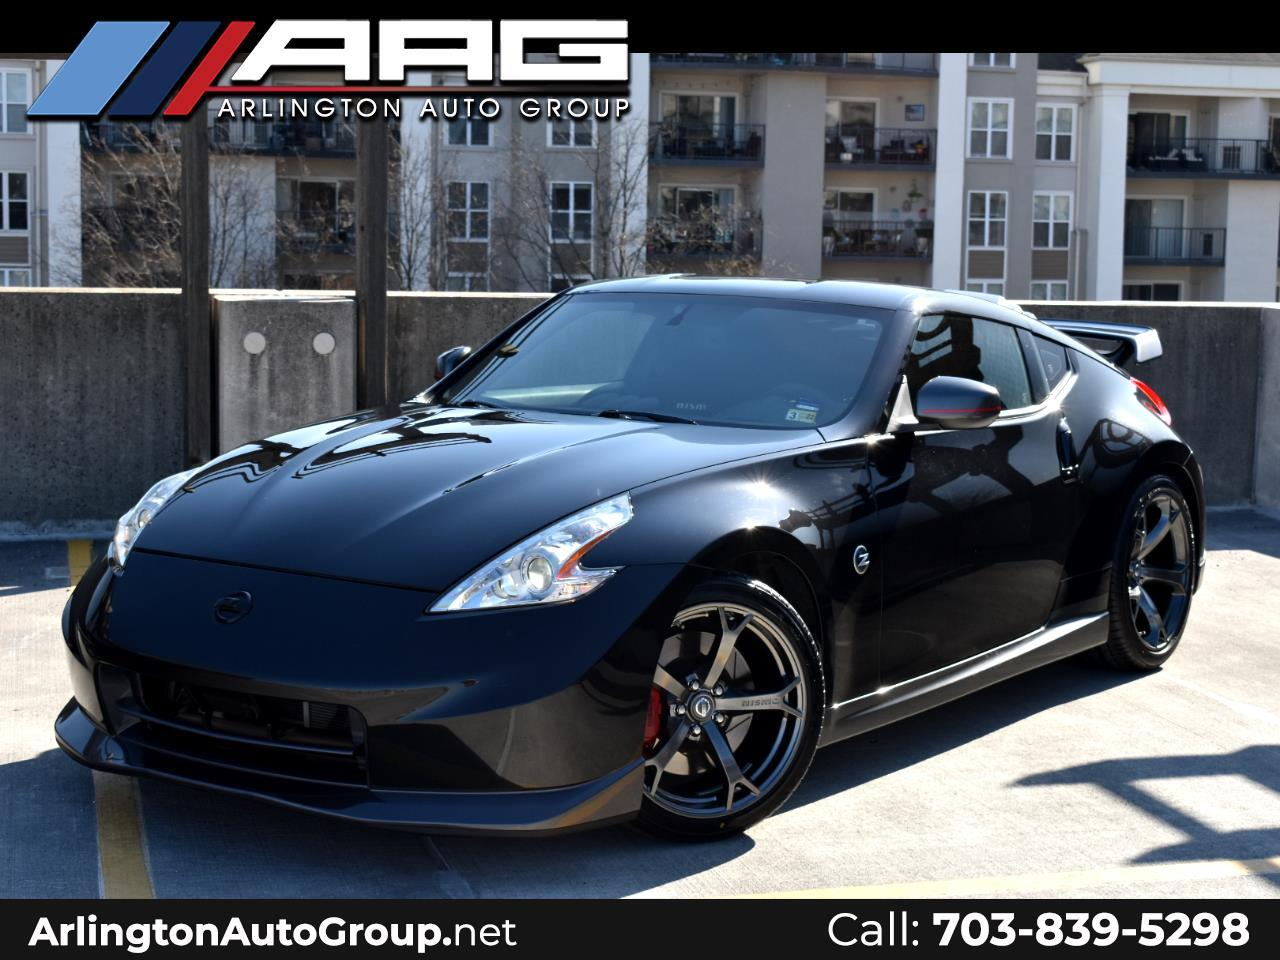 Nissan 370Z 2dr Cpe Manual NISMO 2014